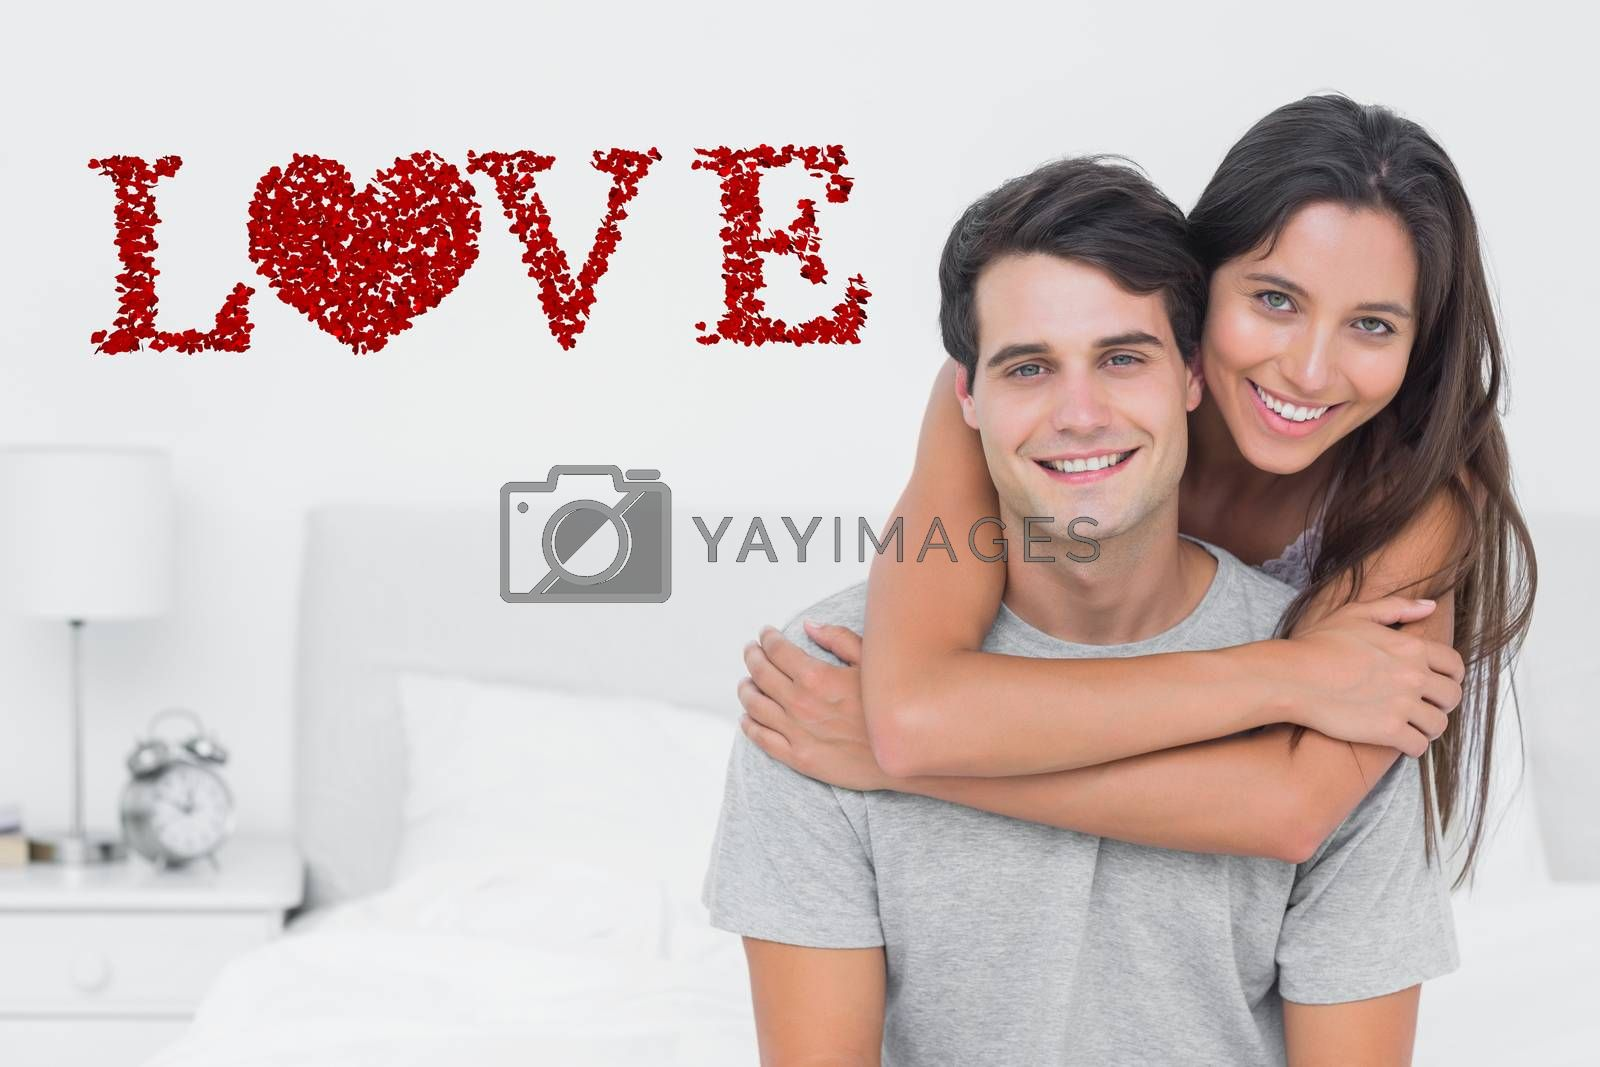 Woman embracing her partner against love spelled out in petals